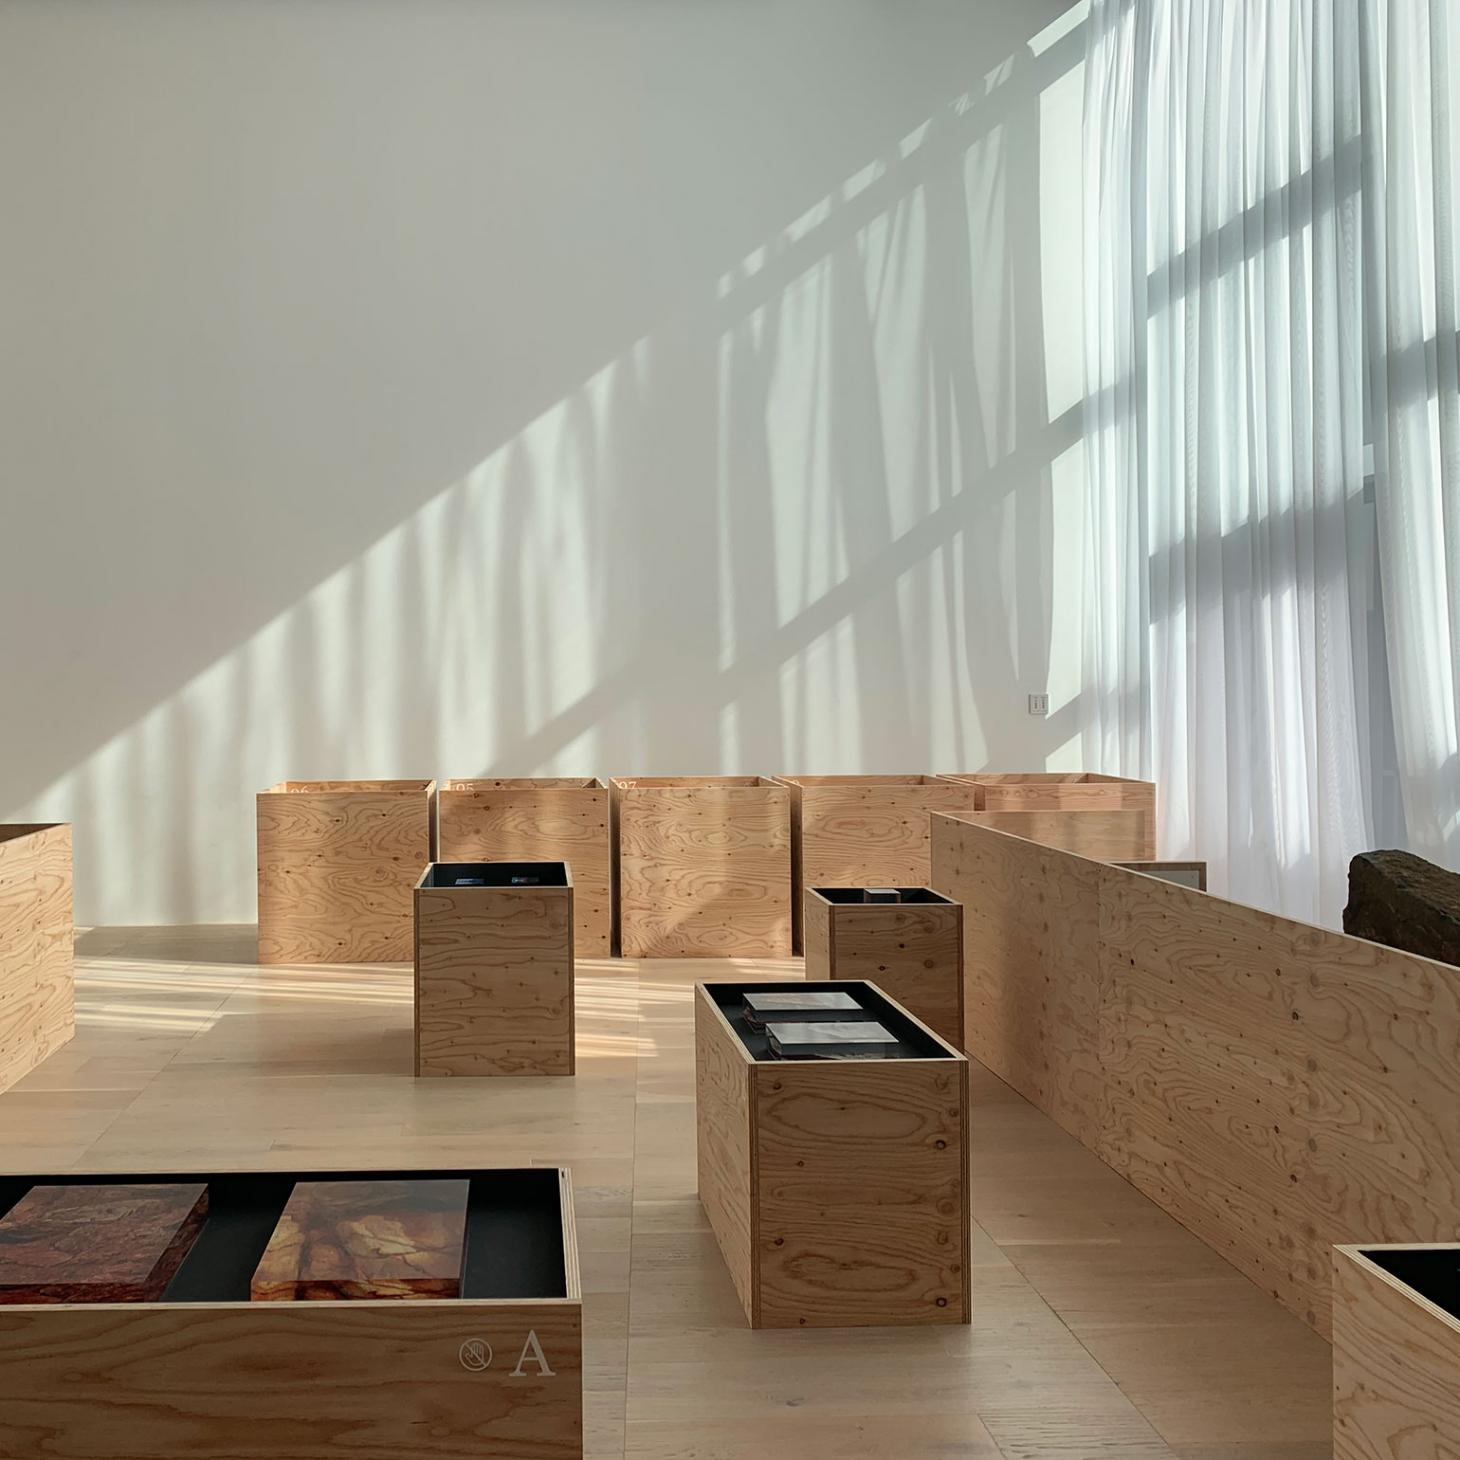 Wooden box installation